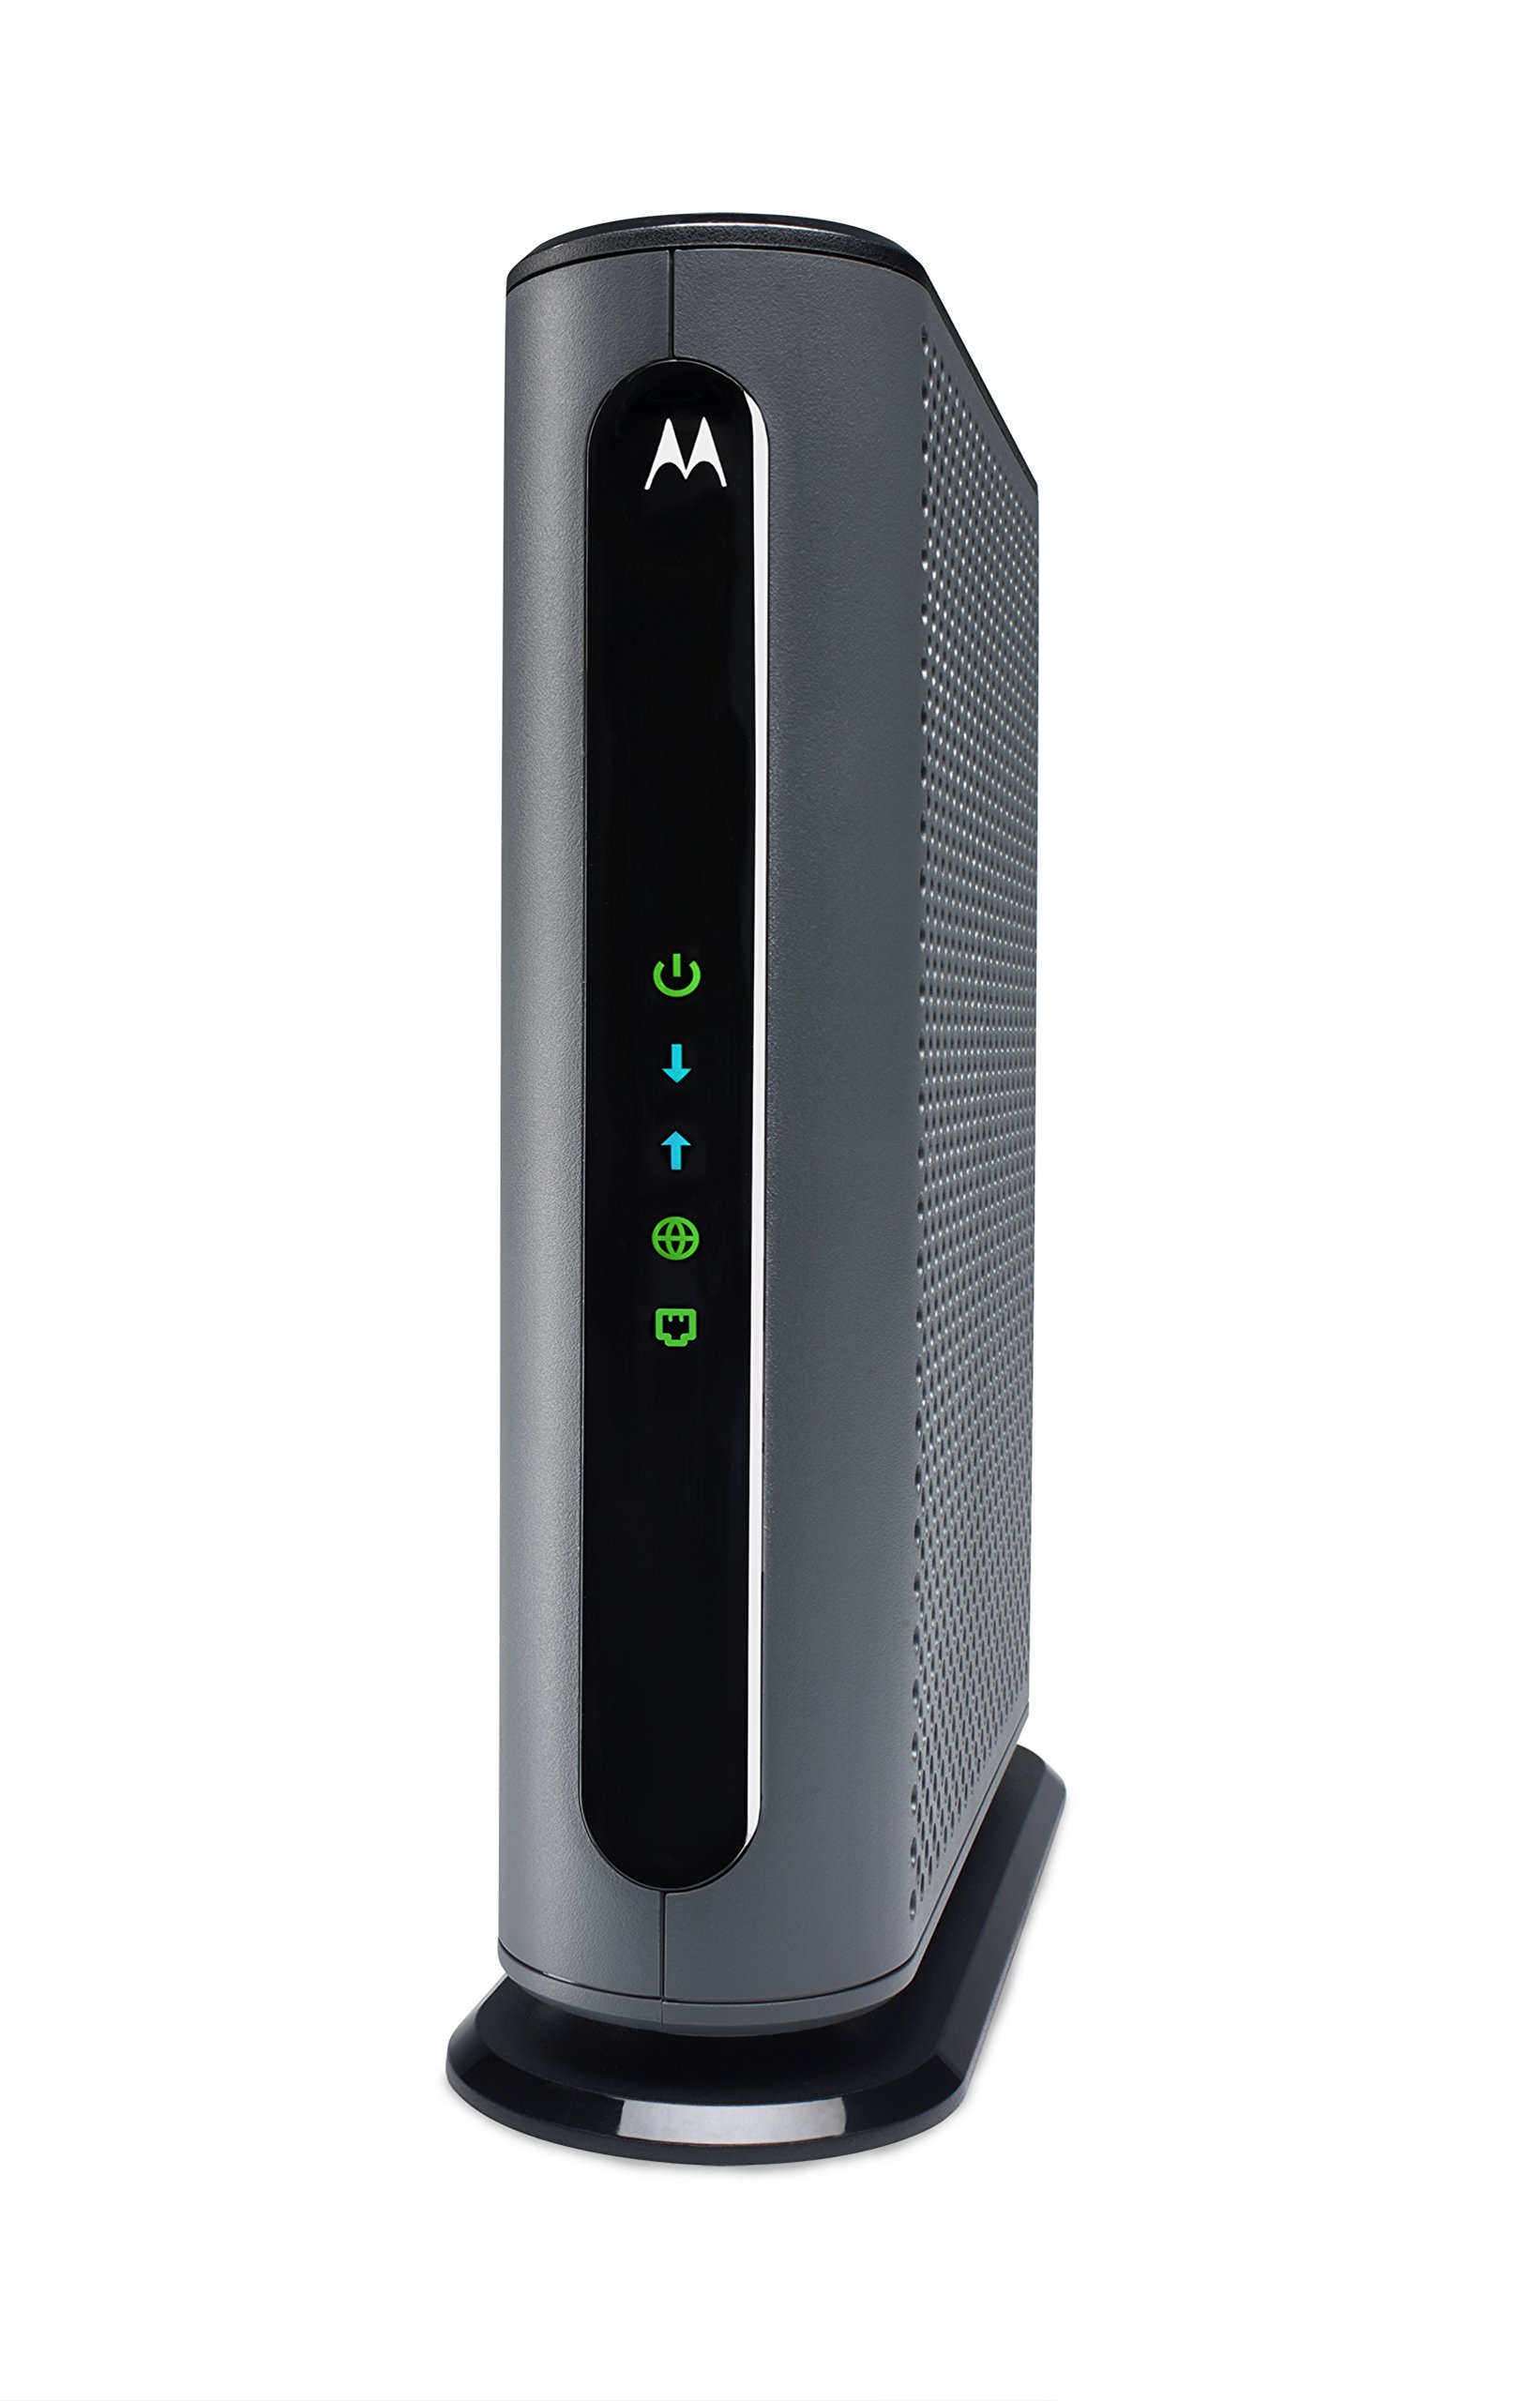 Motorola Ultra Fast DOCSIS 3.1 Cable Modem, Model MB8600, plus 32x8 DOCSIS 3.0, Certified by Comcast XFINITY and Cox Communications